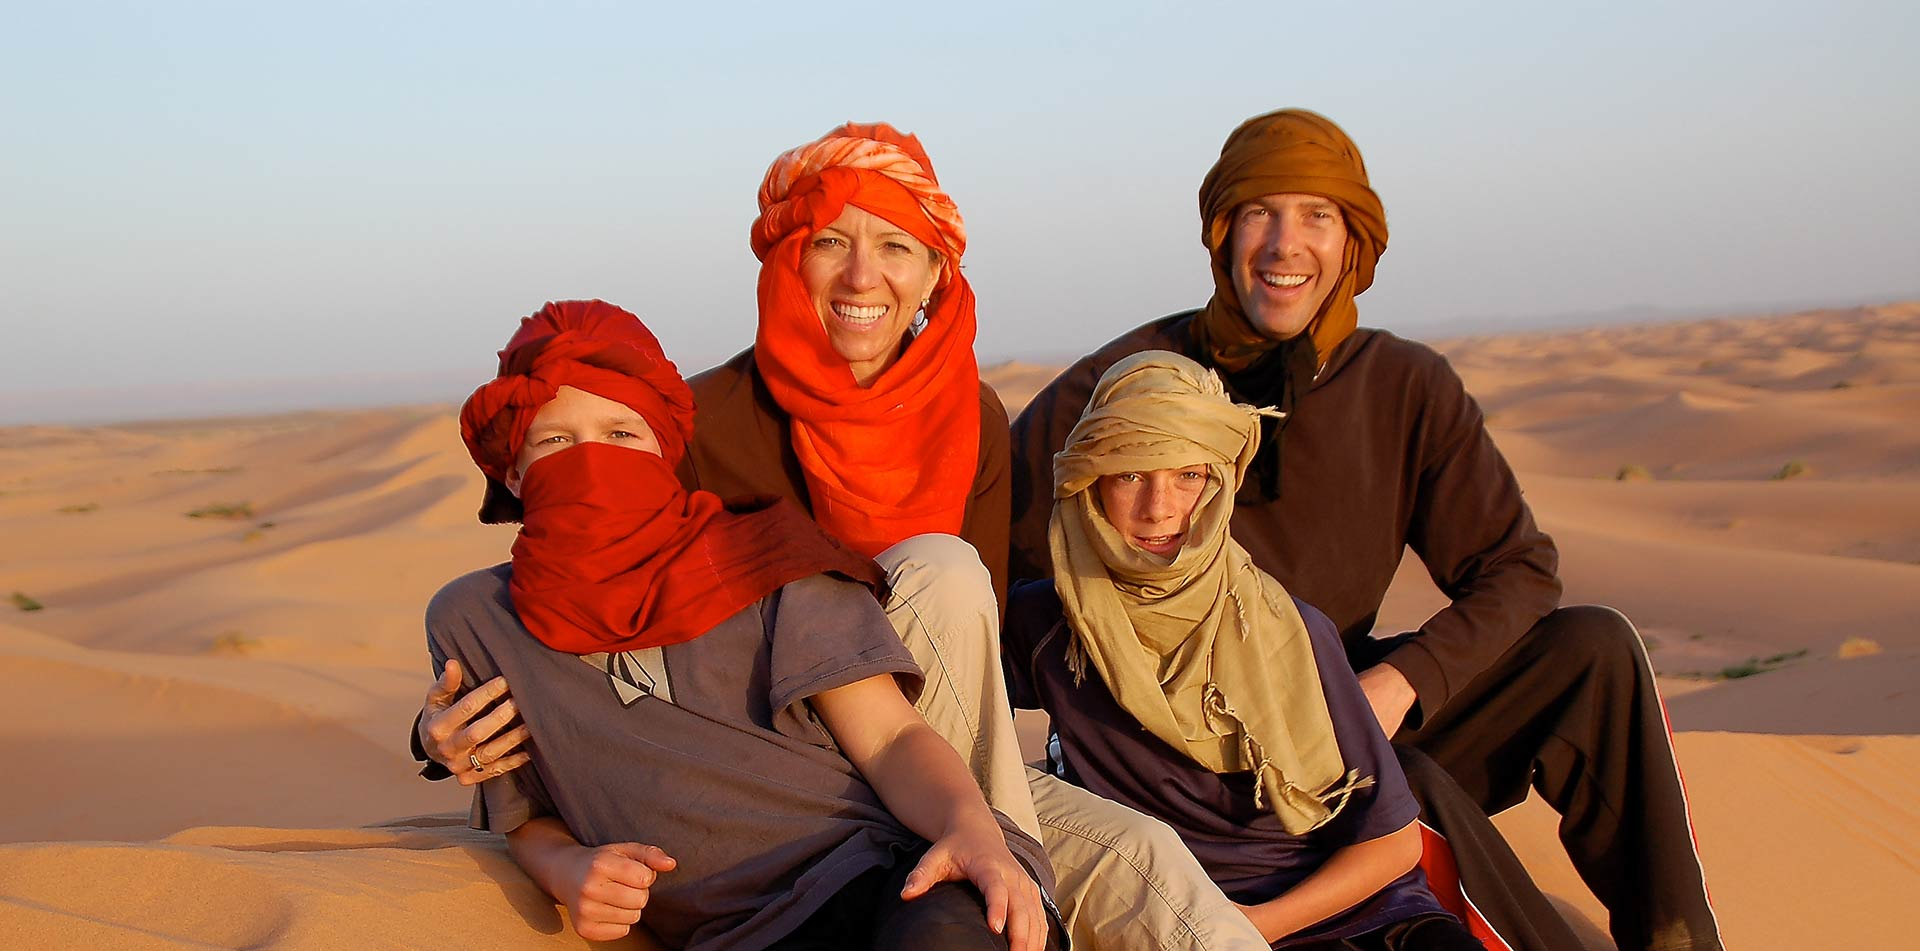 Africa Morocco Sahara Desert happy family wearing colorful head scarves smiling tan sand dunes - luxury vacation destinations